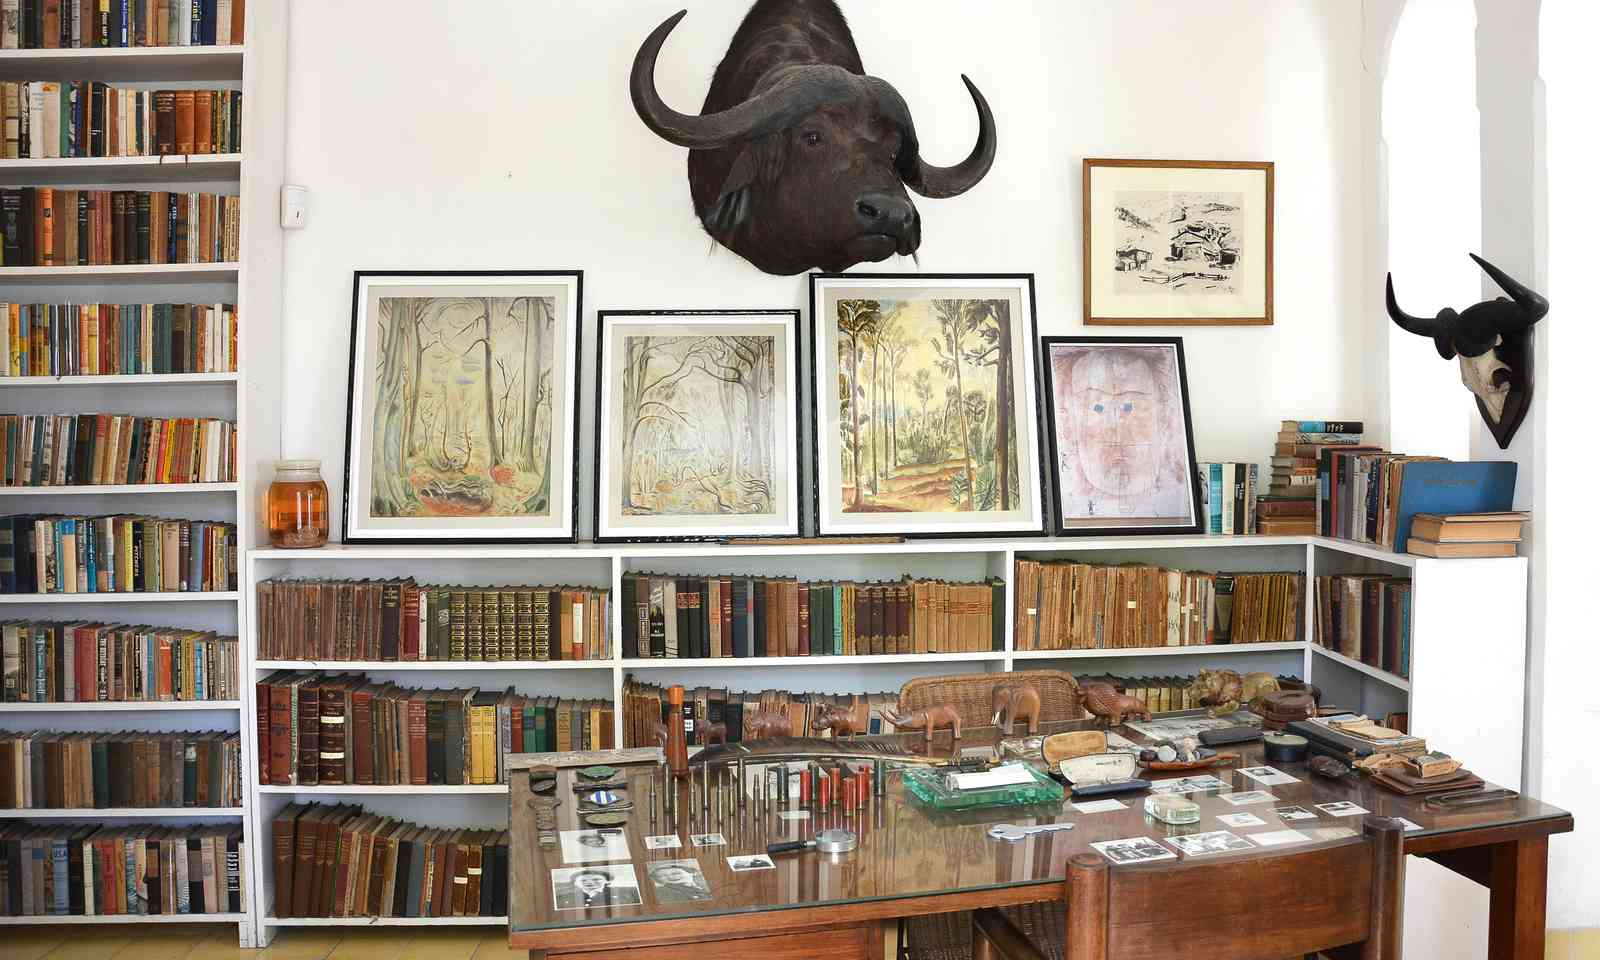 Hemingway's library at Finca Vigia (Dreamstime.com)